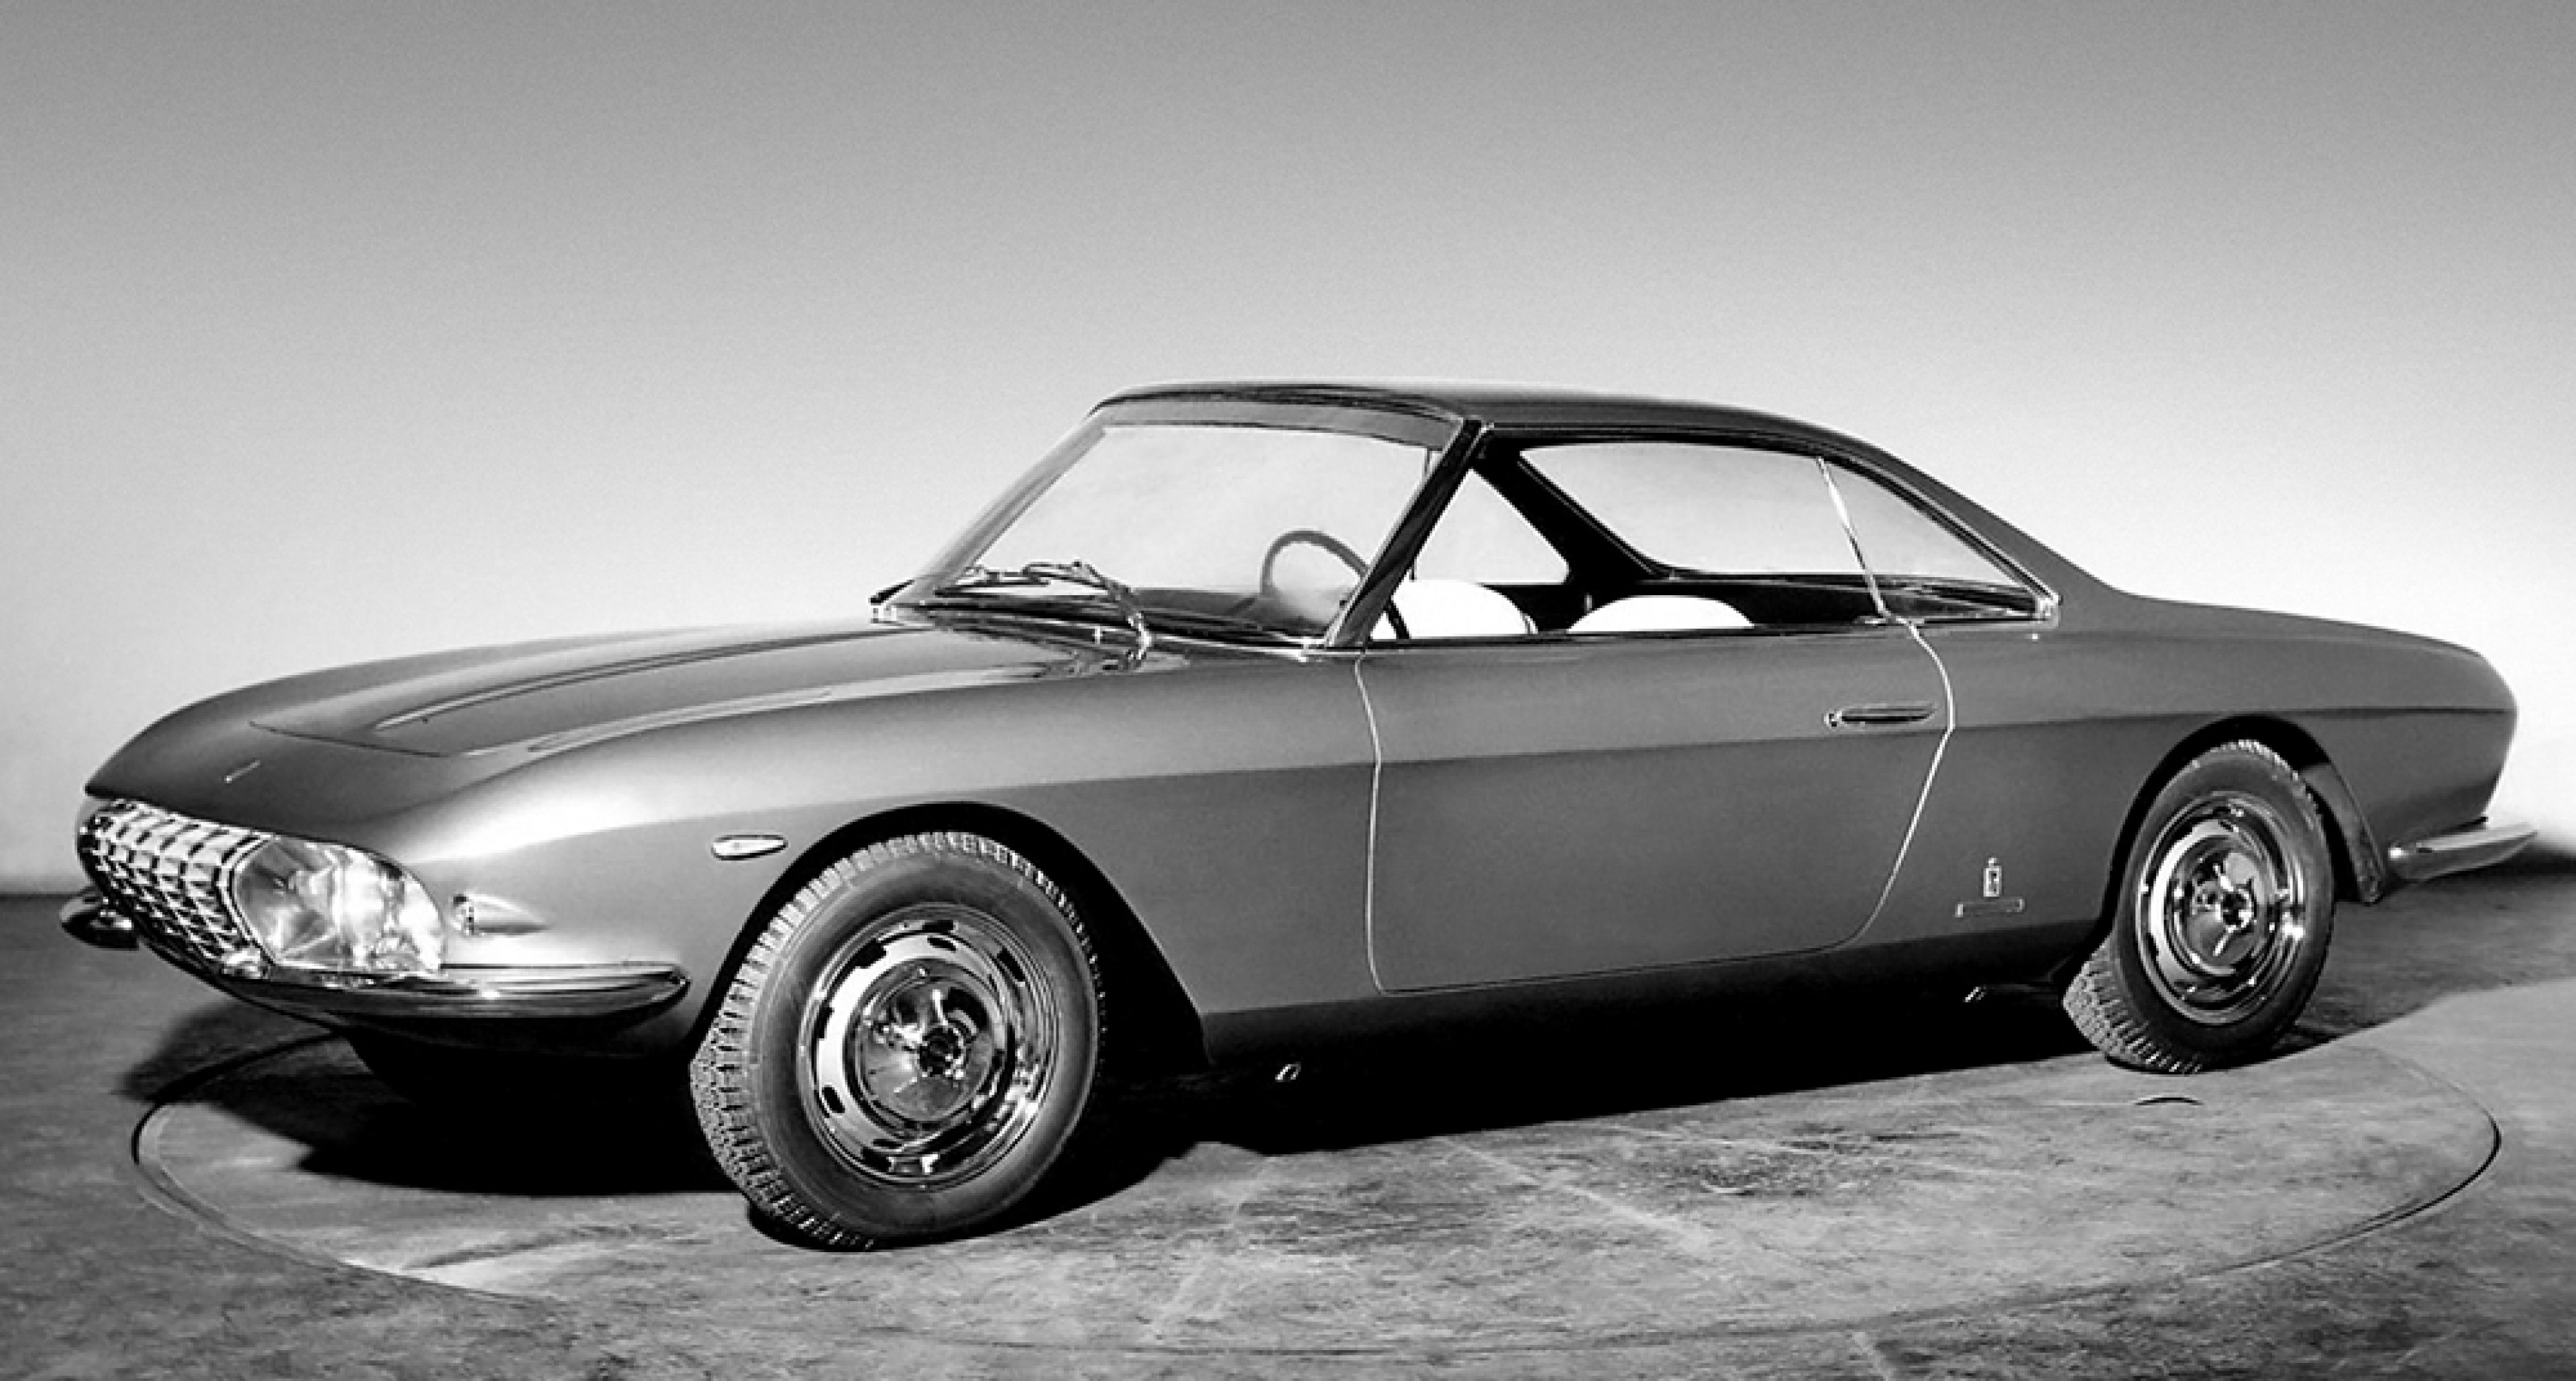 Fiat 2300 S Coupé Lausanne - presented at the 1964 Geneva Motor Show.